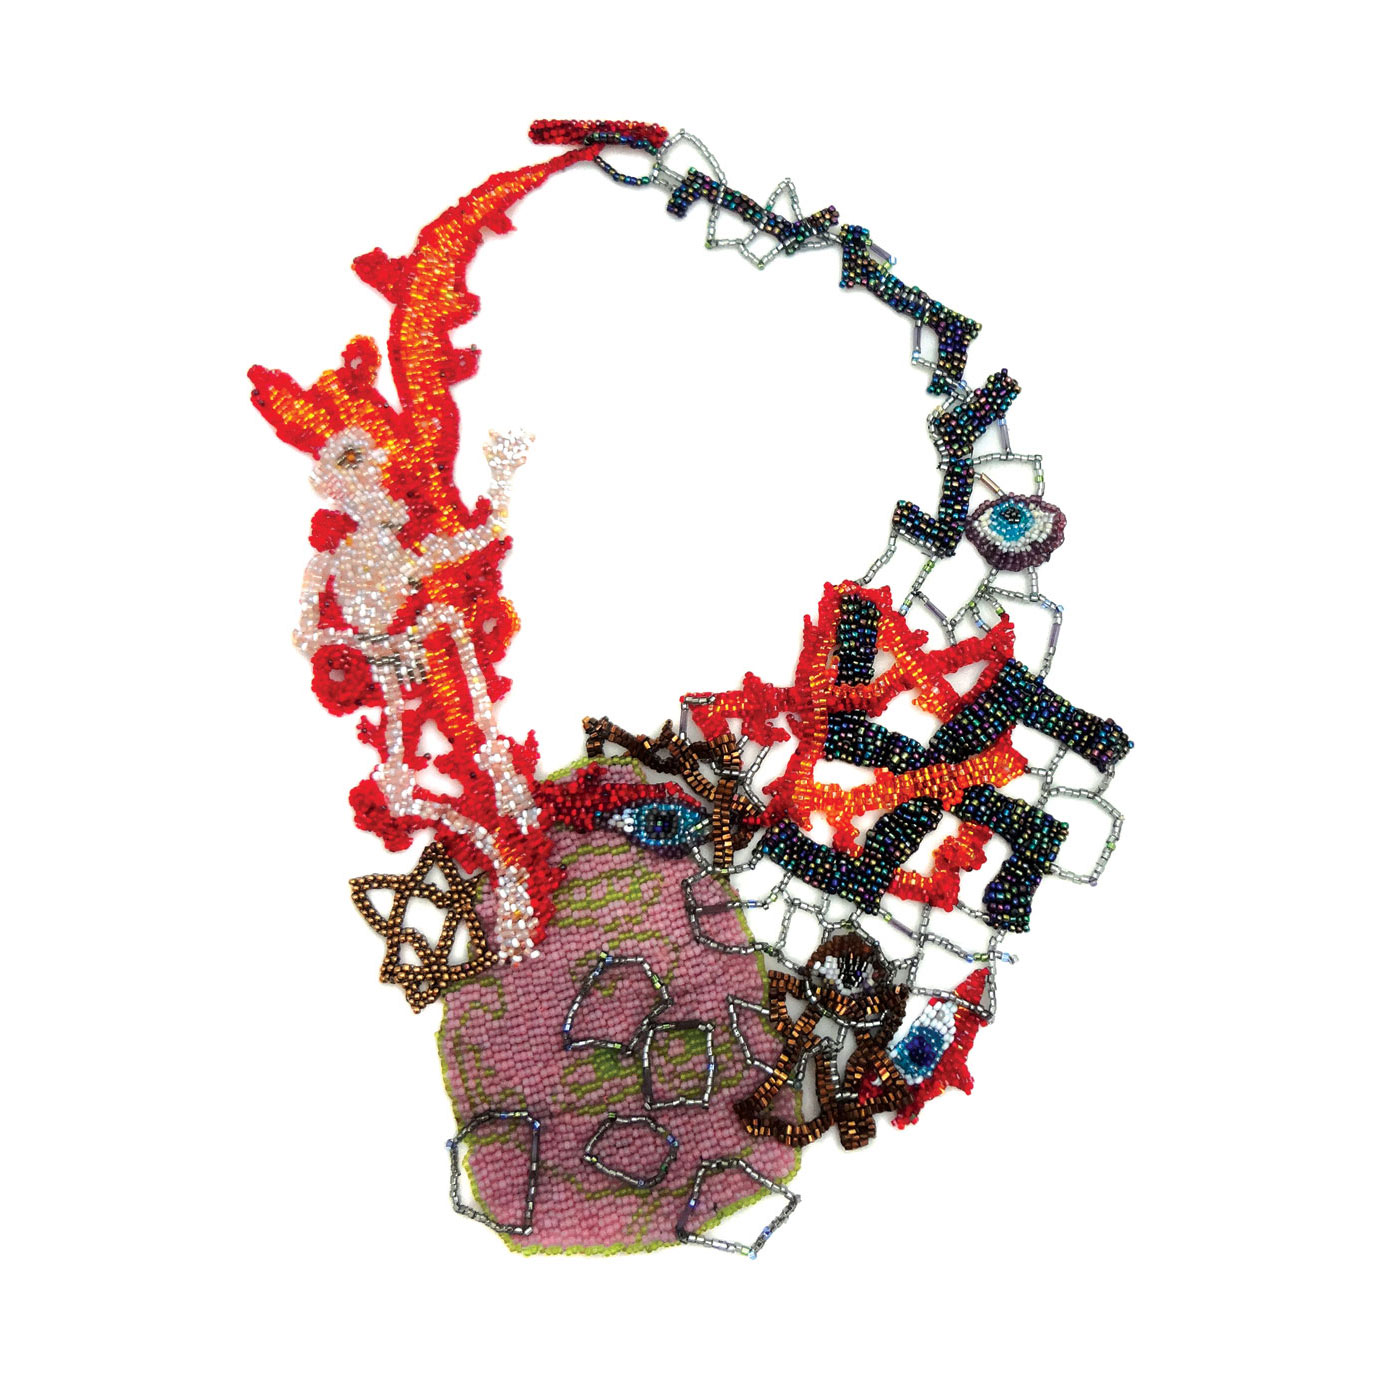 Uneasy Beauty:  HOLOCAUST NECKLACE by Joyce J. Scott of peyote-stitched glass beads, threads, 30.5 x 19.7 centimeters, 2013.  Photograph by Emelee Van Zee. Photographs courtesy of Fuller Craft Museum .